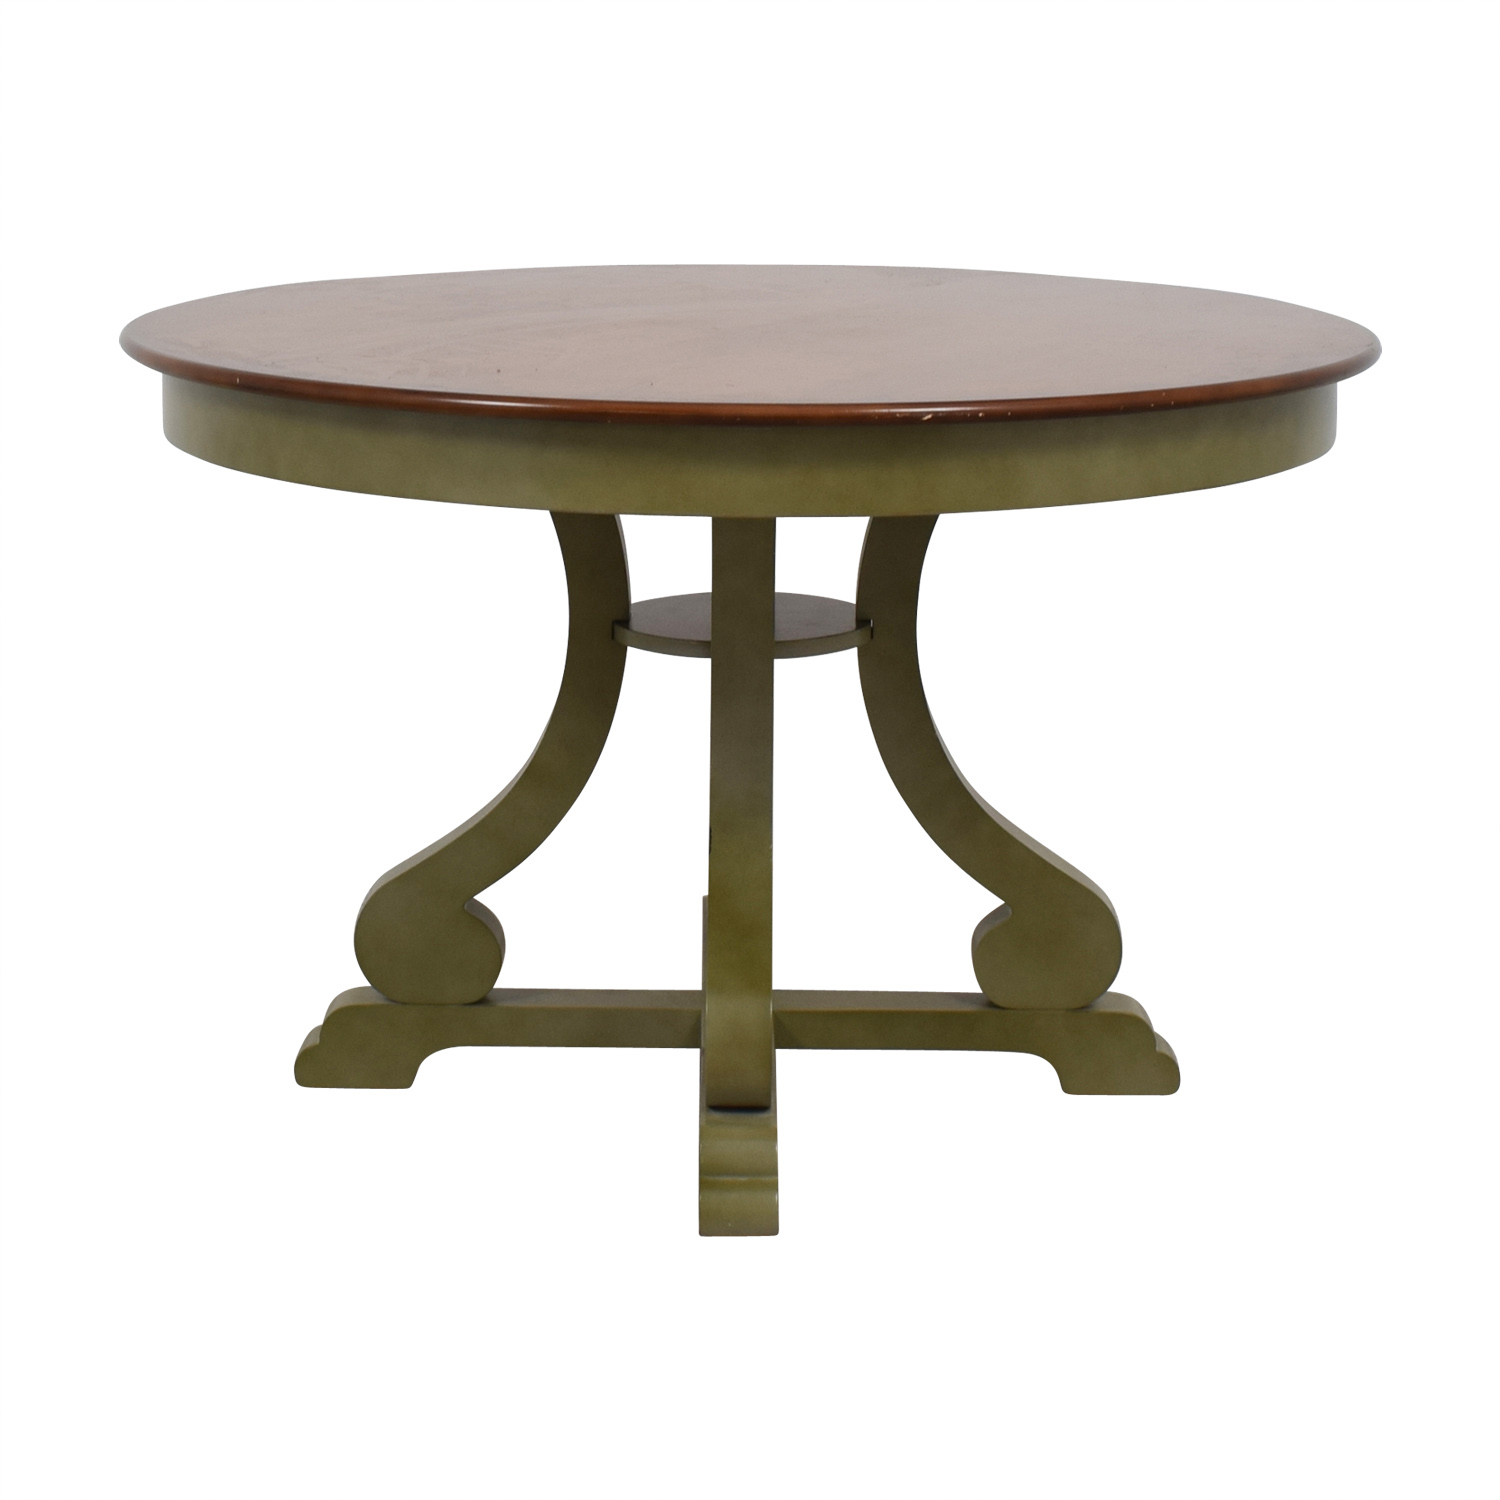 Pier 1 Imports Green and Wood Round Dining Table sale